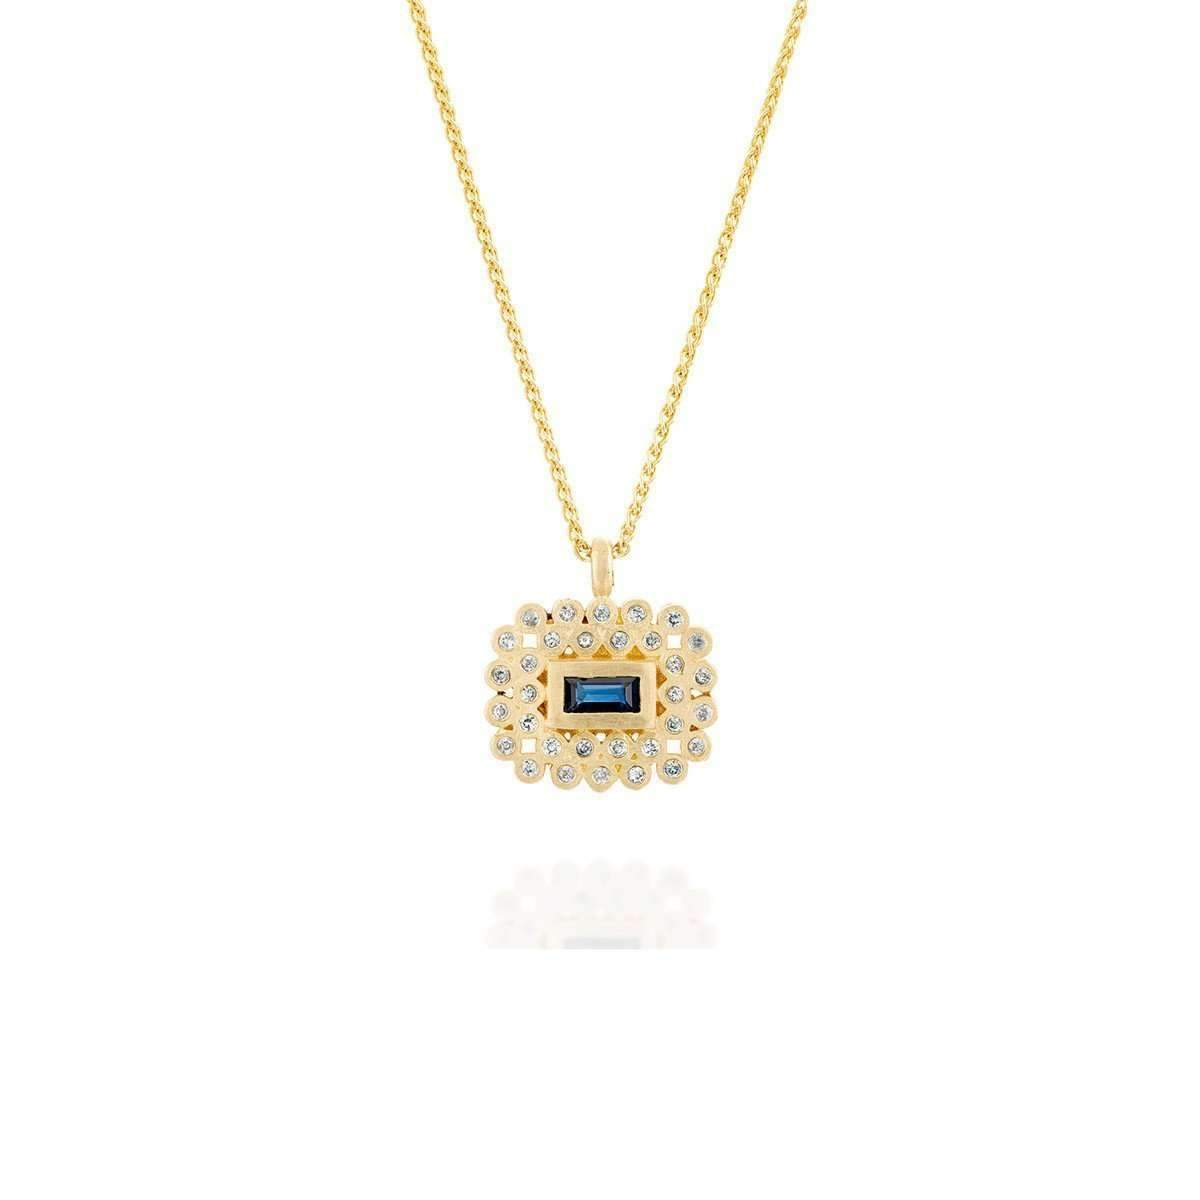 Tal Blue Sapphire 18kt Gold Necklace-Necklaces-Michal Bendzel Friedman Jewelry Design-JewelStreet